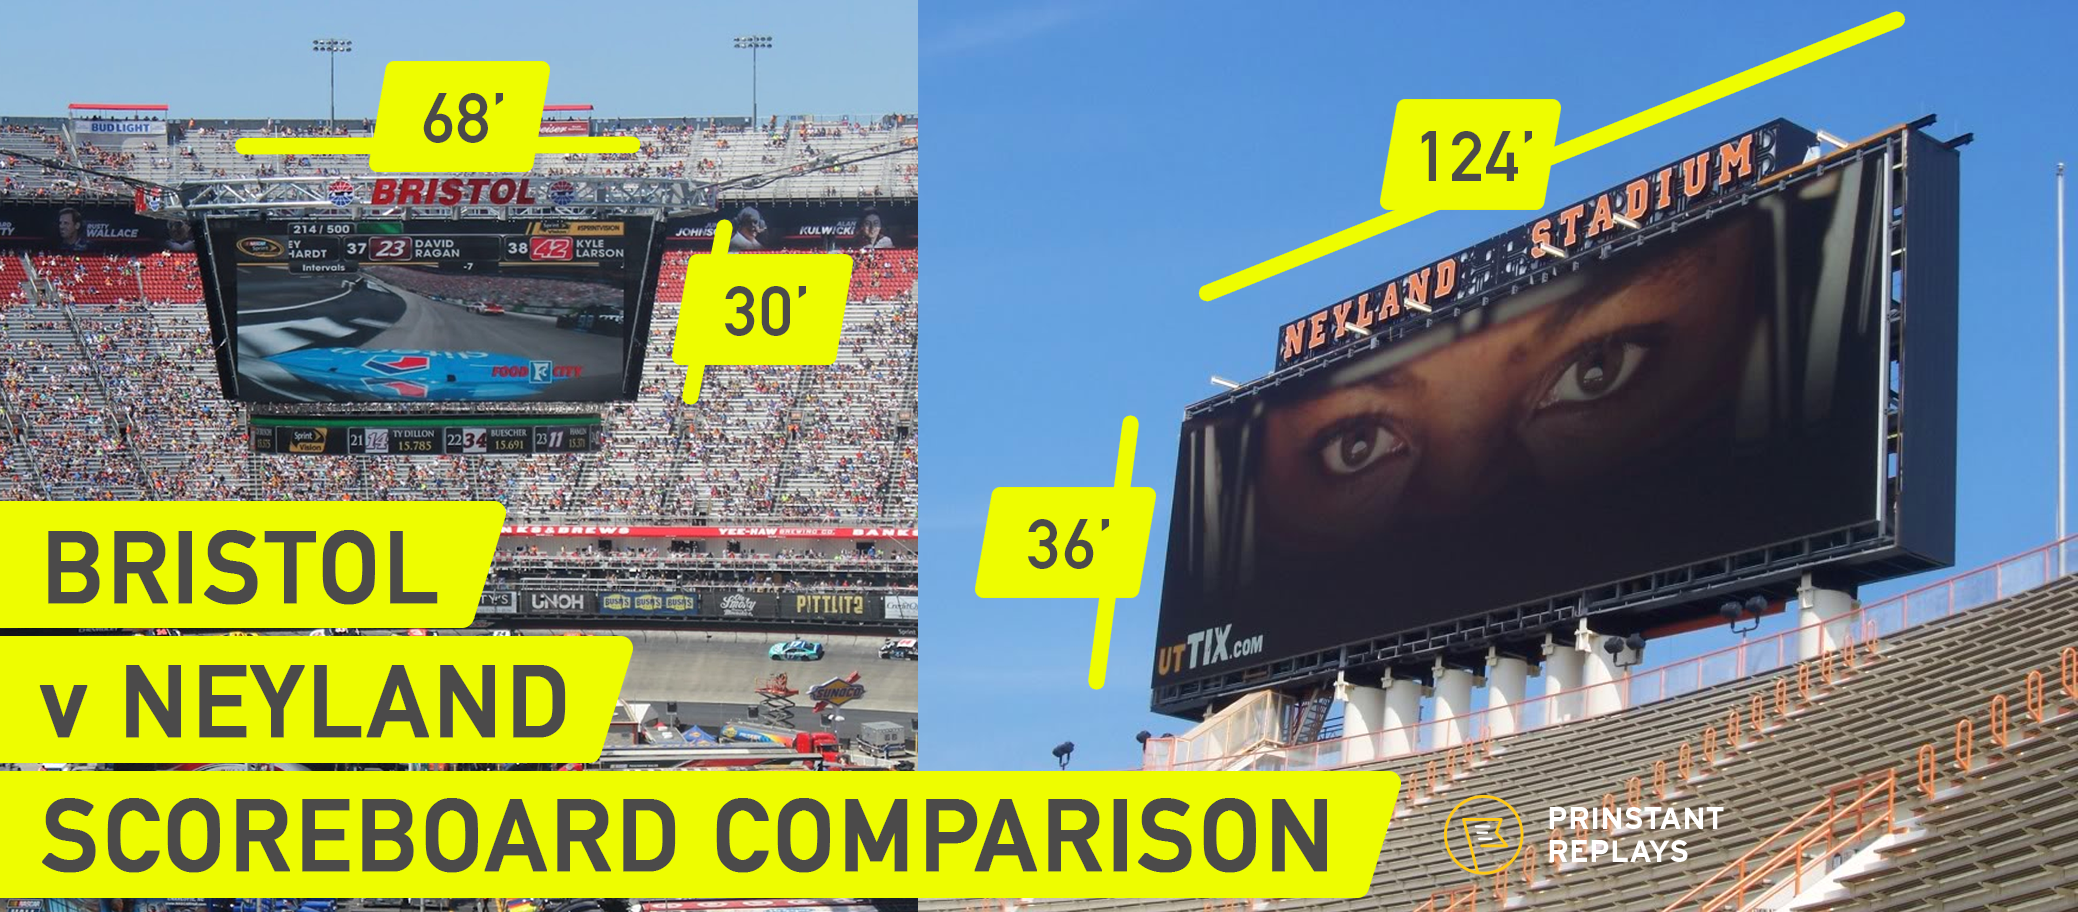 Comparing Colossus and Neyland Scoreboards by Prinstant Replays